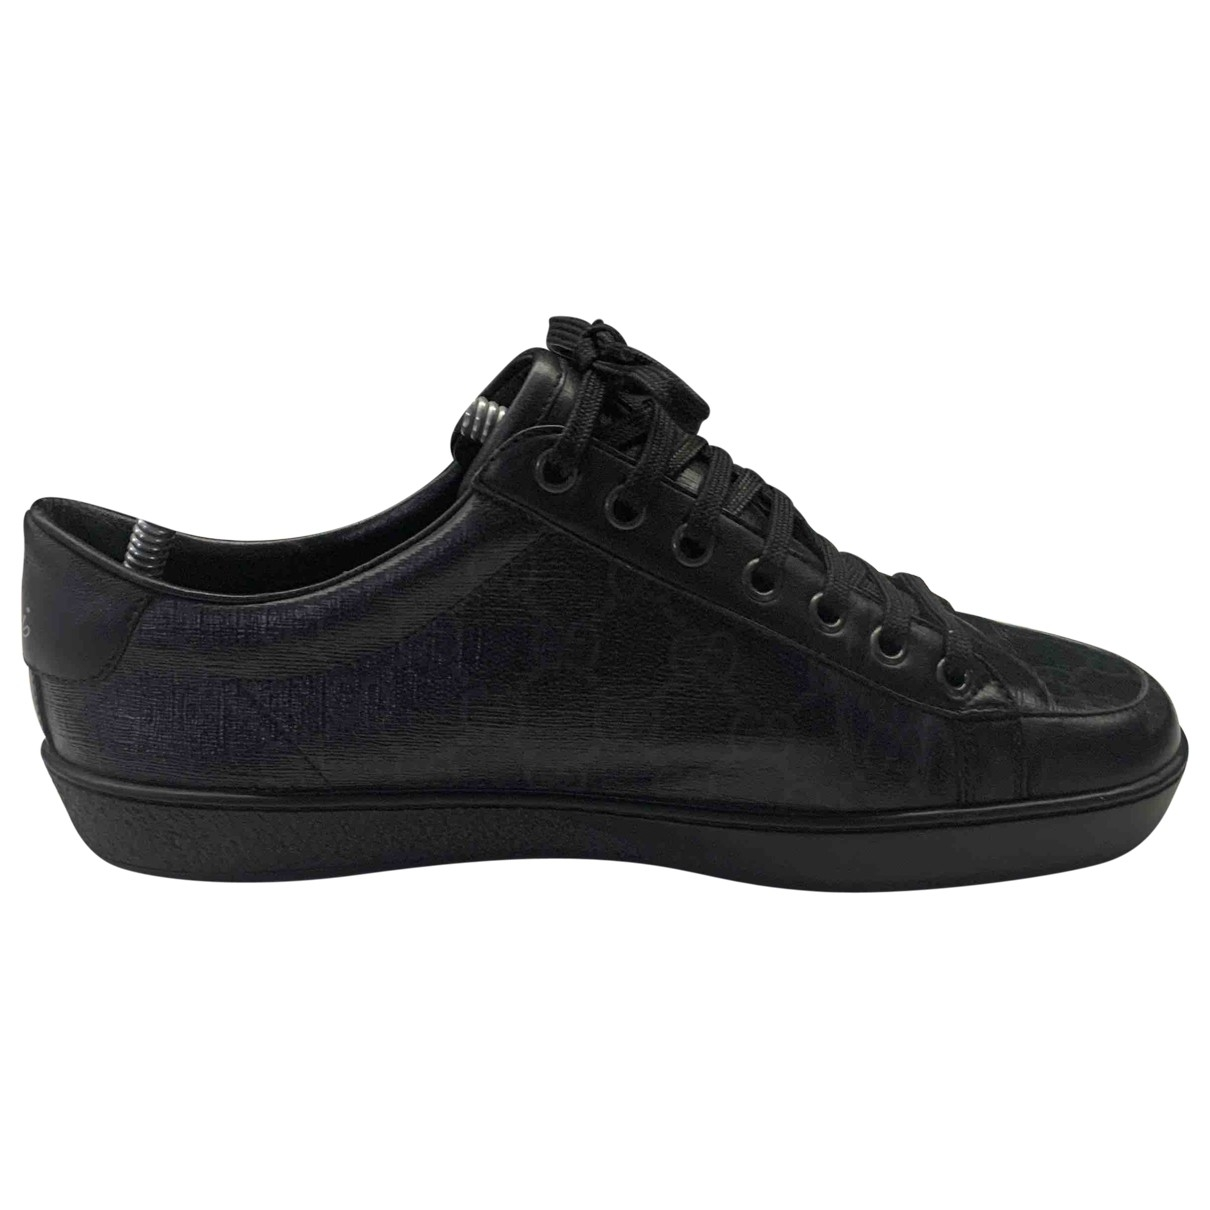 Gucci \N Black Cloth Trainers for Men 6 UK